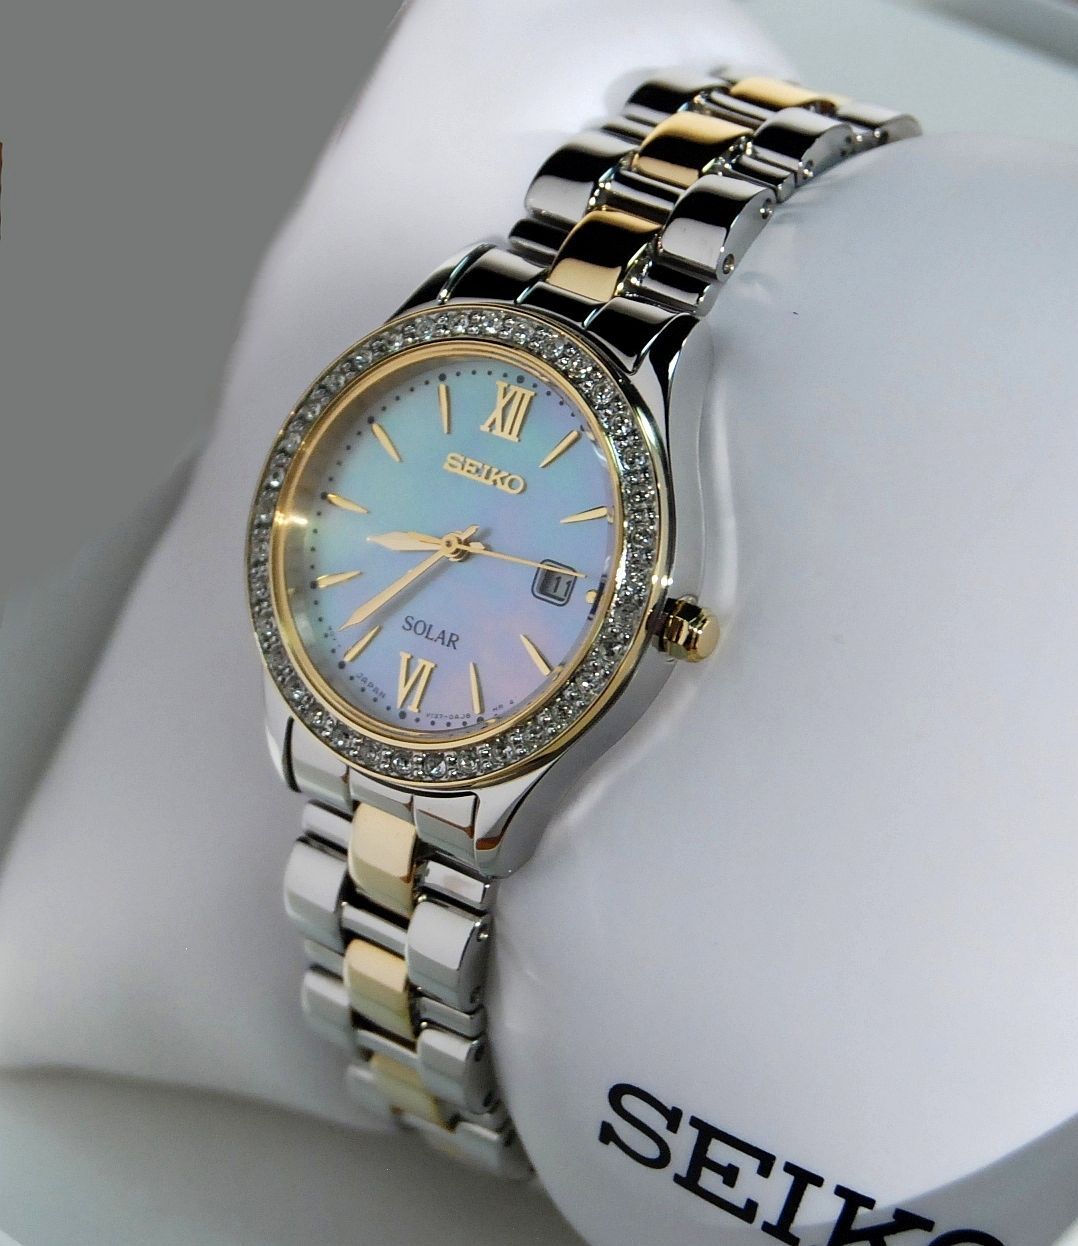 seiko-watches-women-23-wonderful-design-watch-s-pre-owned-solar ... b0f24fe1c7